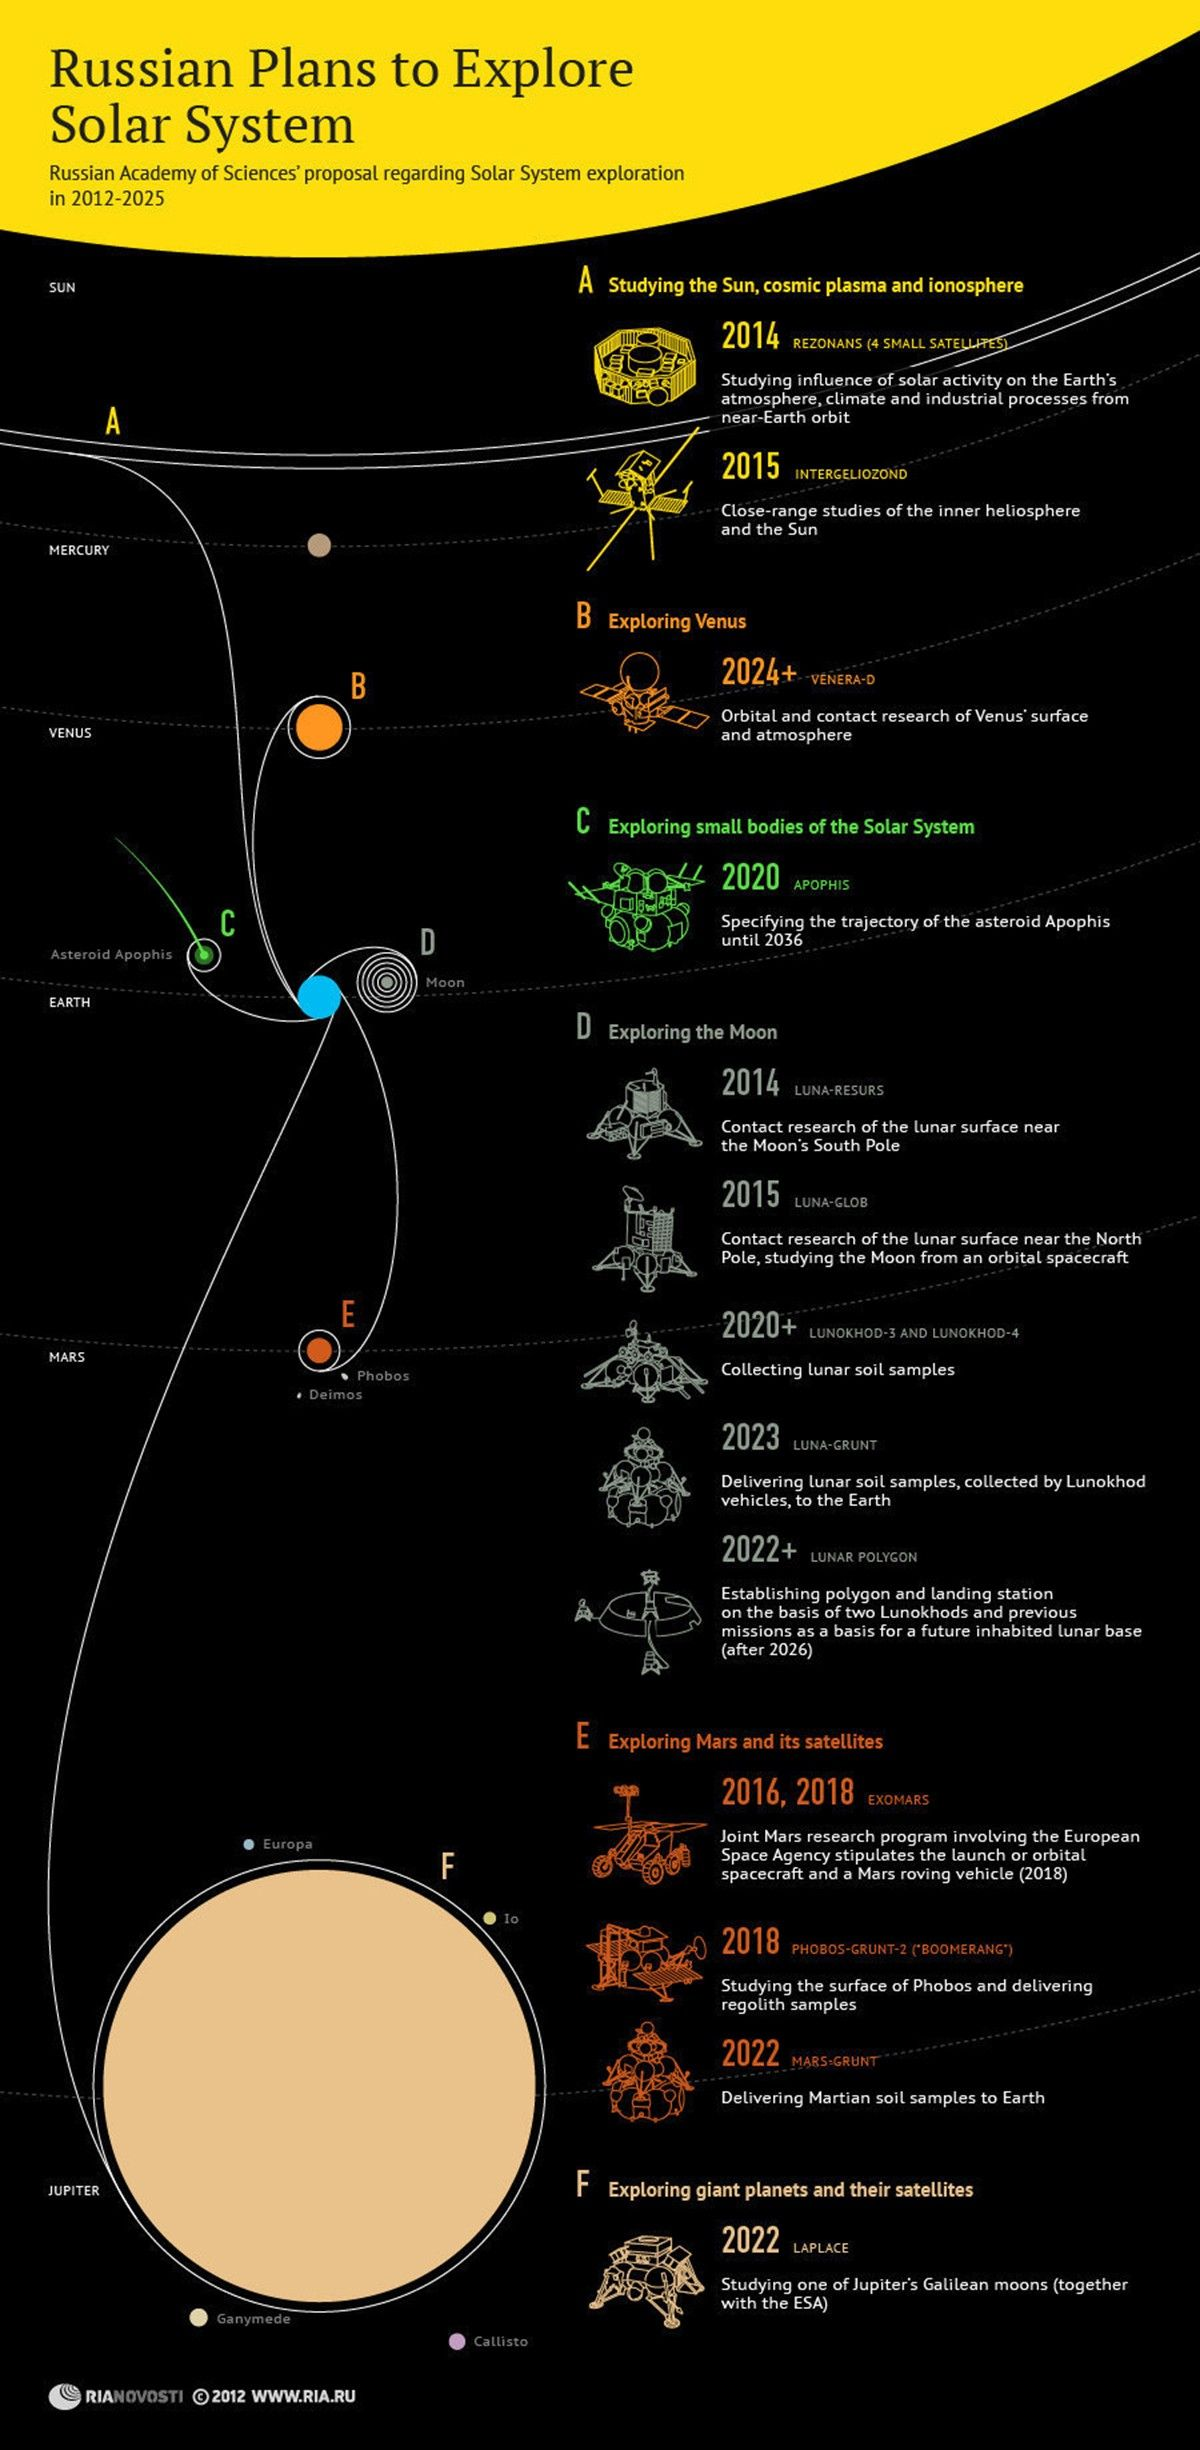 An Infographic About The Plans Of Russia To Explore The